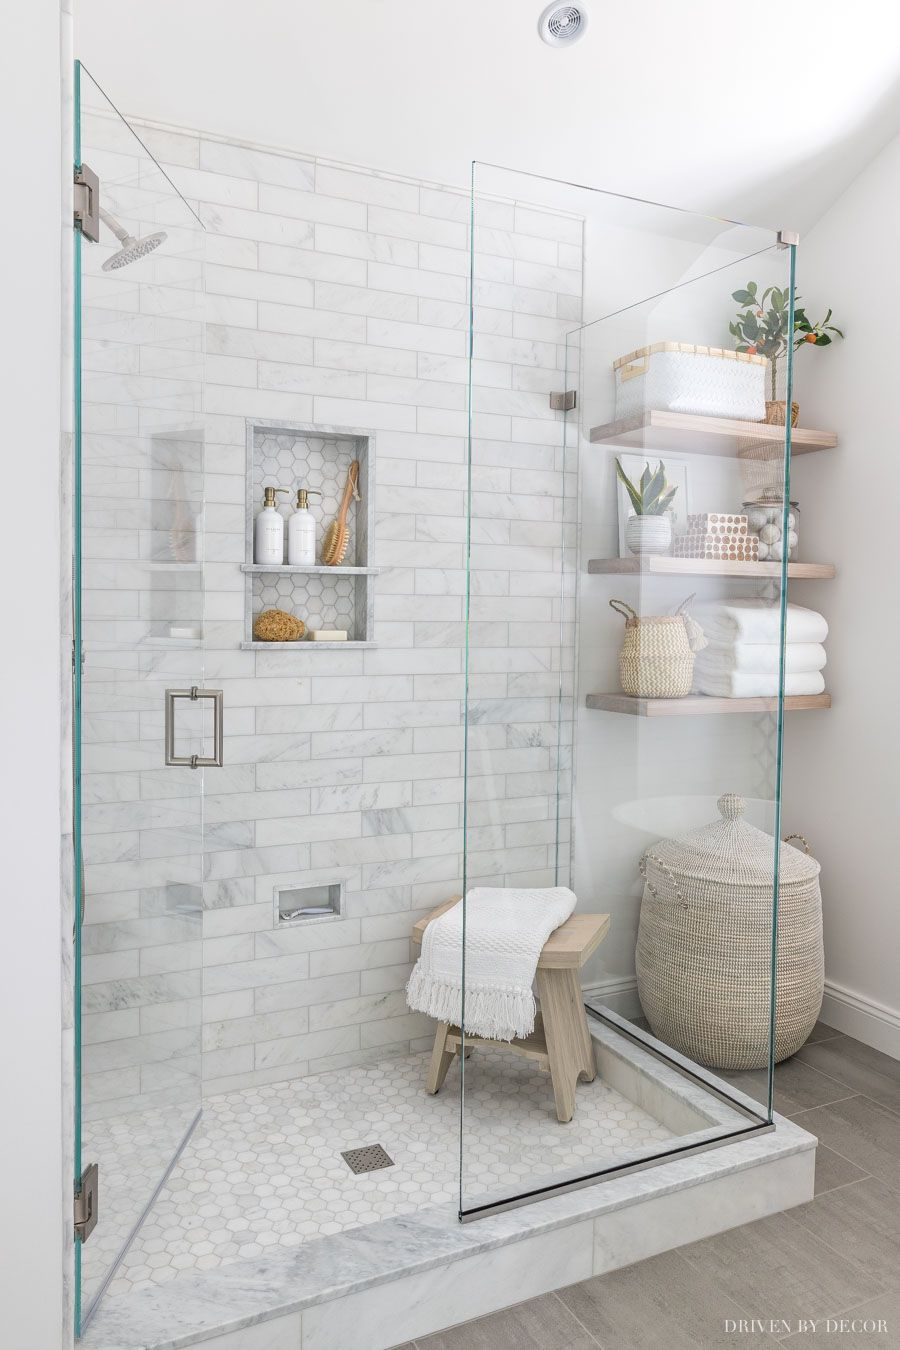 Glass Shower Enclosures Cost Options All The Details Driven By Decor Bathroom Interior Design Bathroom Interior Master Bathroom Renovation